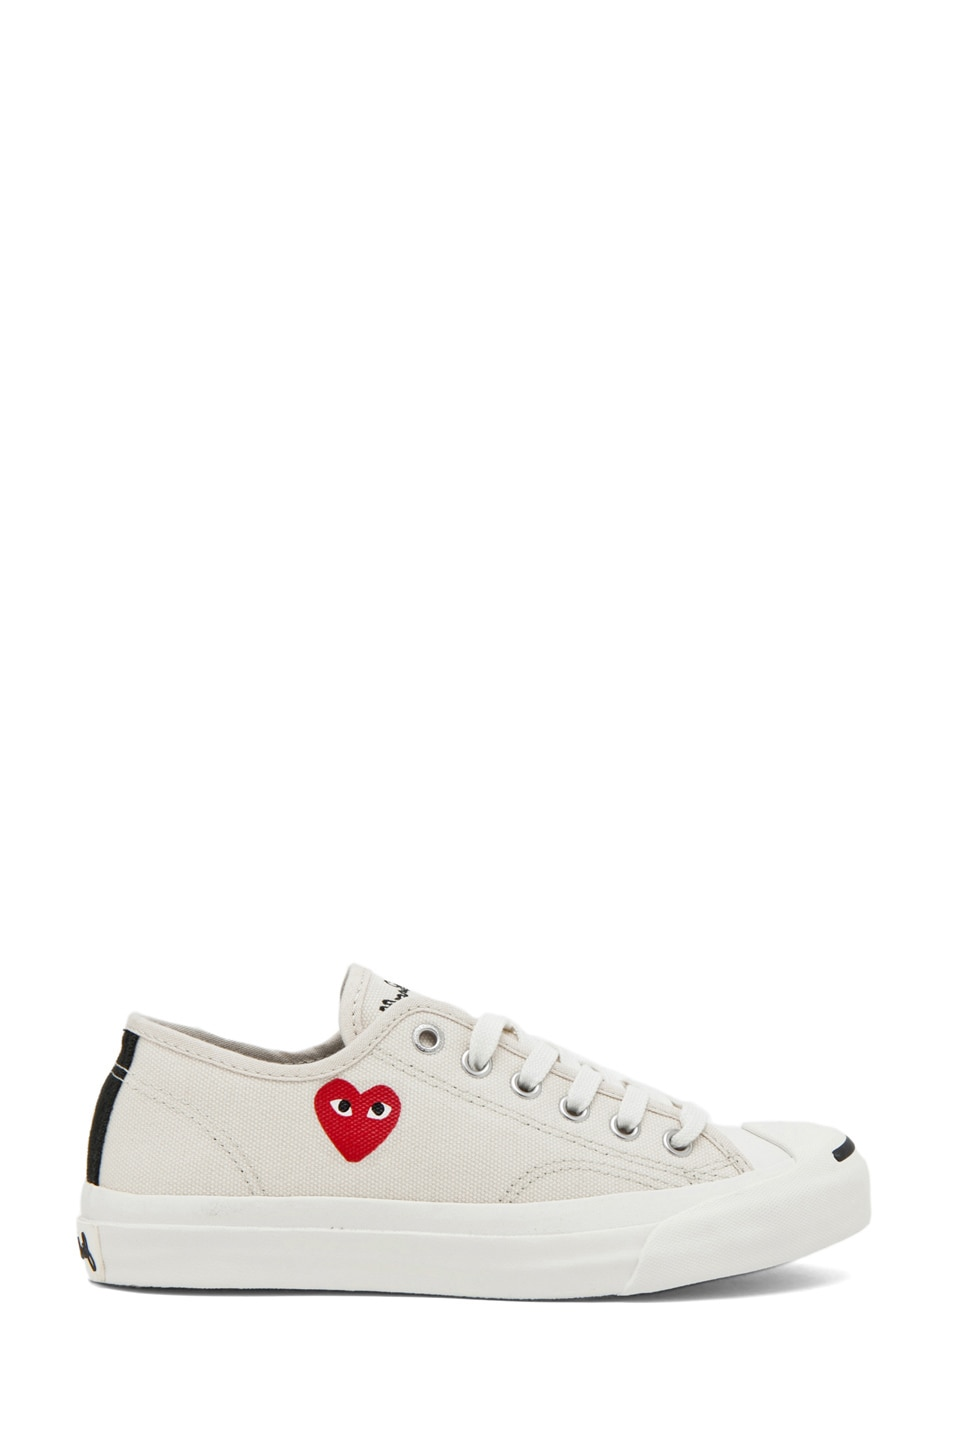 cdg converse small heart